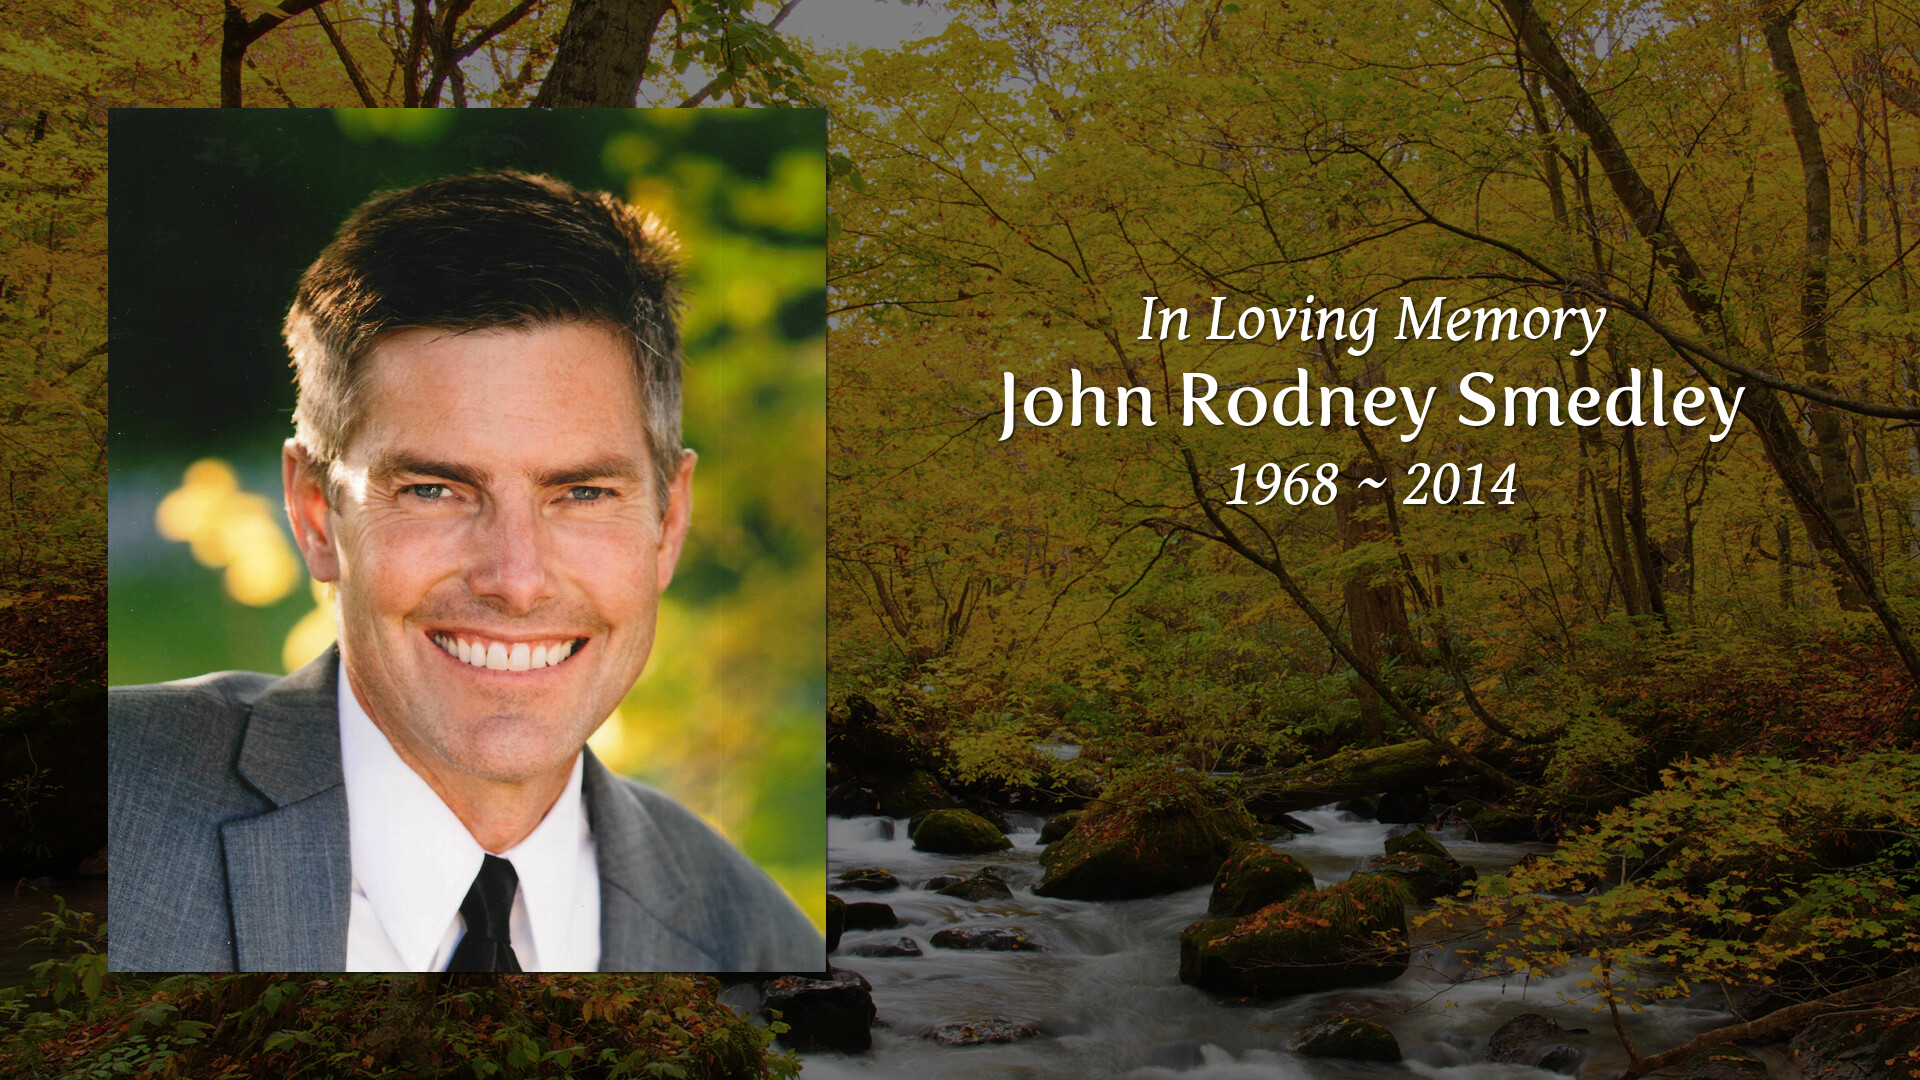 John Smedley Obituary - Colonial Funeral Home